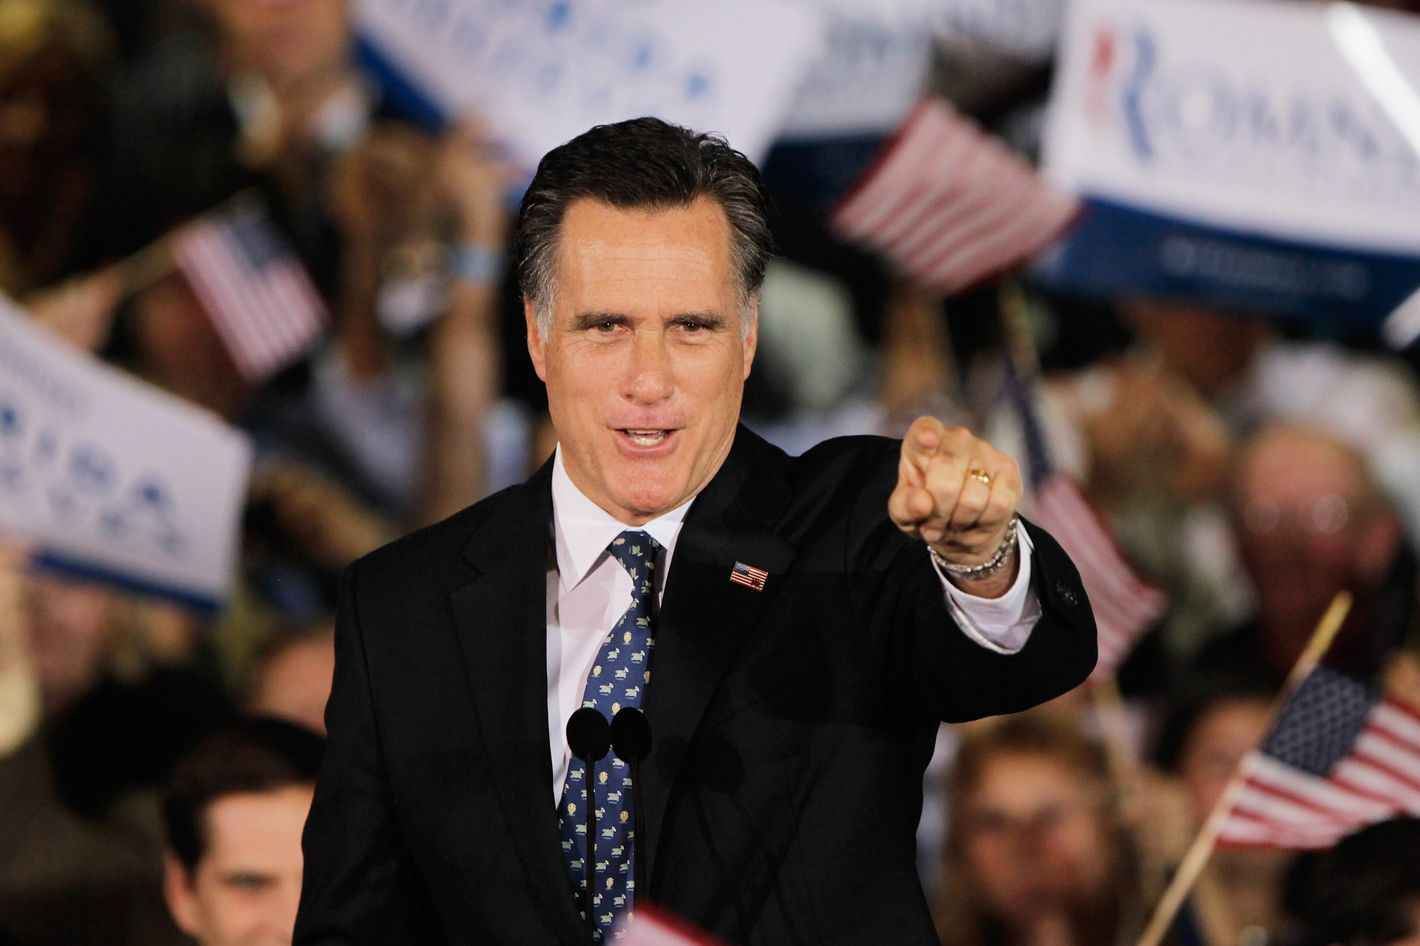 TAMPA, FL - JANUARY 31:  Republican presidential candidate, former Massachusetts Gov. Mitt Romney gestures during his Florida primary night party on January 31, 2012 in Tampa, Florida. According to early results Romney defeated former Speaker of the House Newt Gingrich, former U.S. Sen. Rick Santorum and U.S. Rep. Ron Paul (R-TX) to win Florida's primary.   (Photo by Joe Raedle/Getty Images)